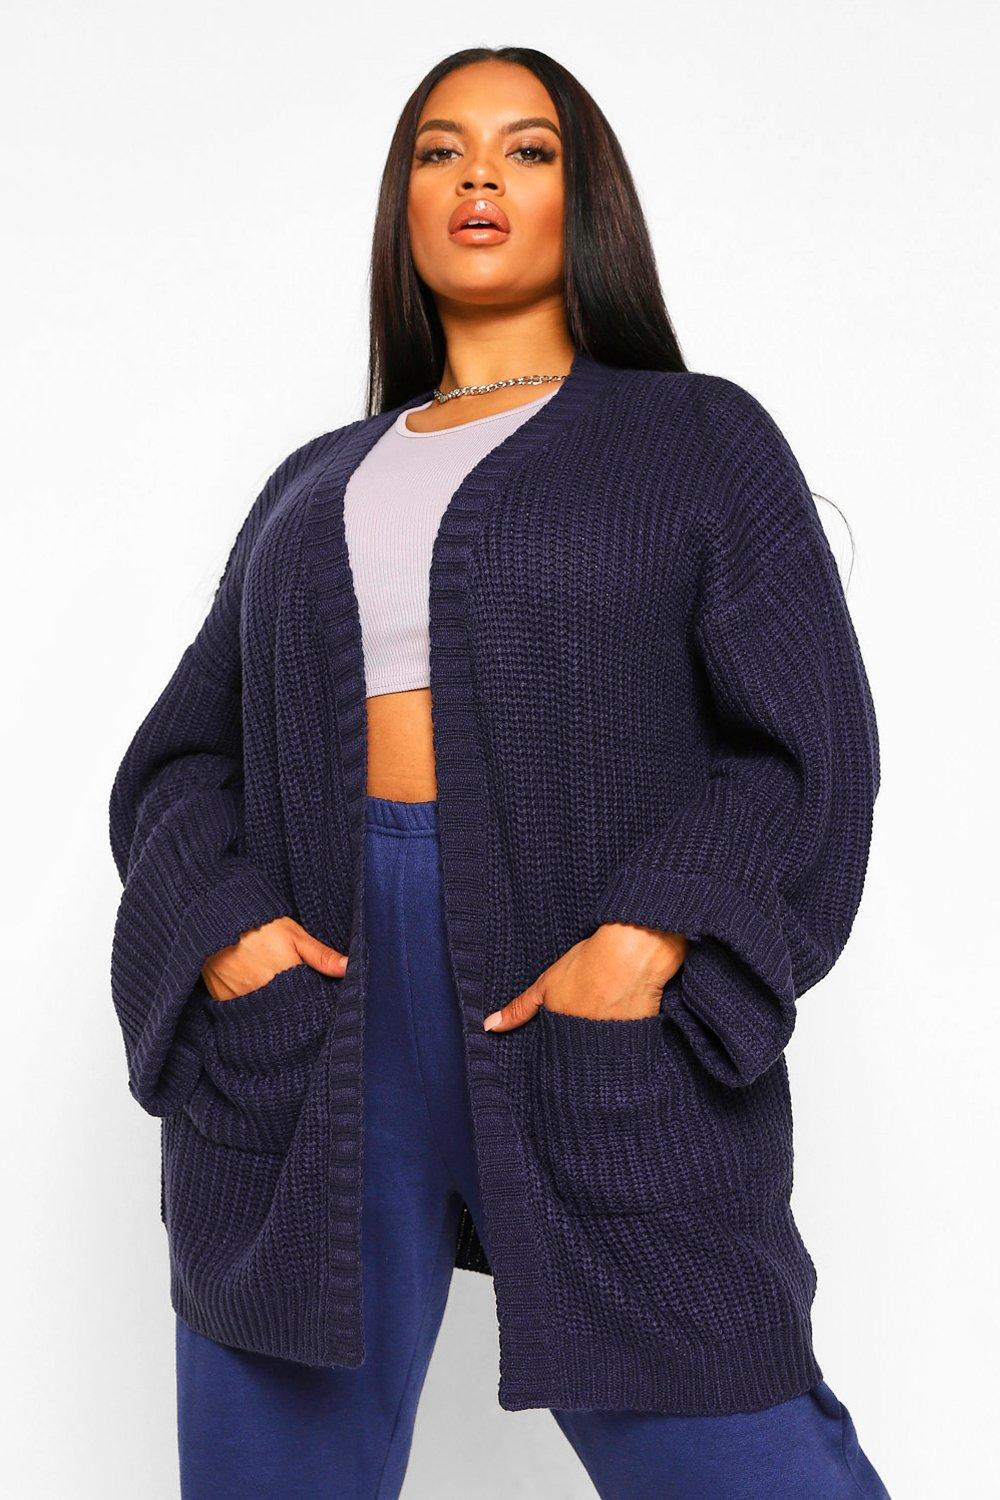 Womens Plus - Oversized Cardigan mit Vordertaschendetail - marineblau - XL, Marineblau - Boohoo.com